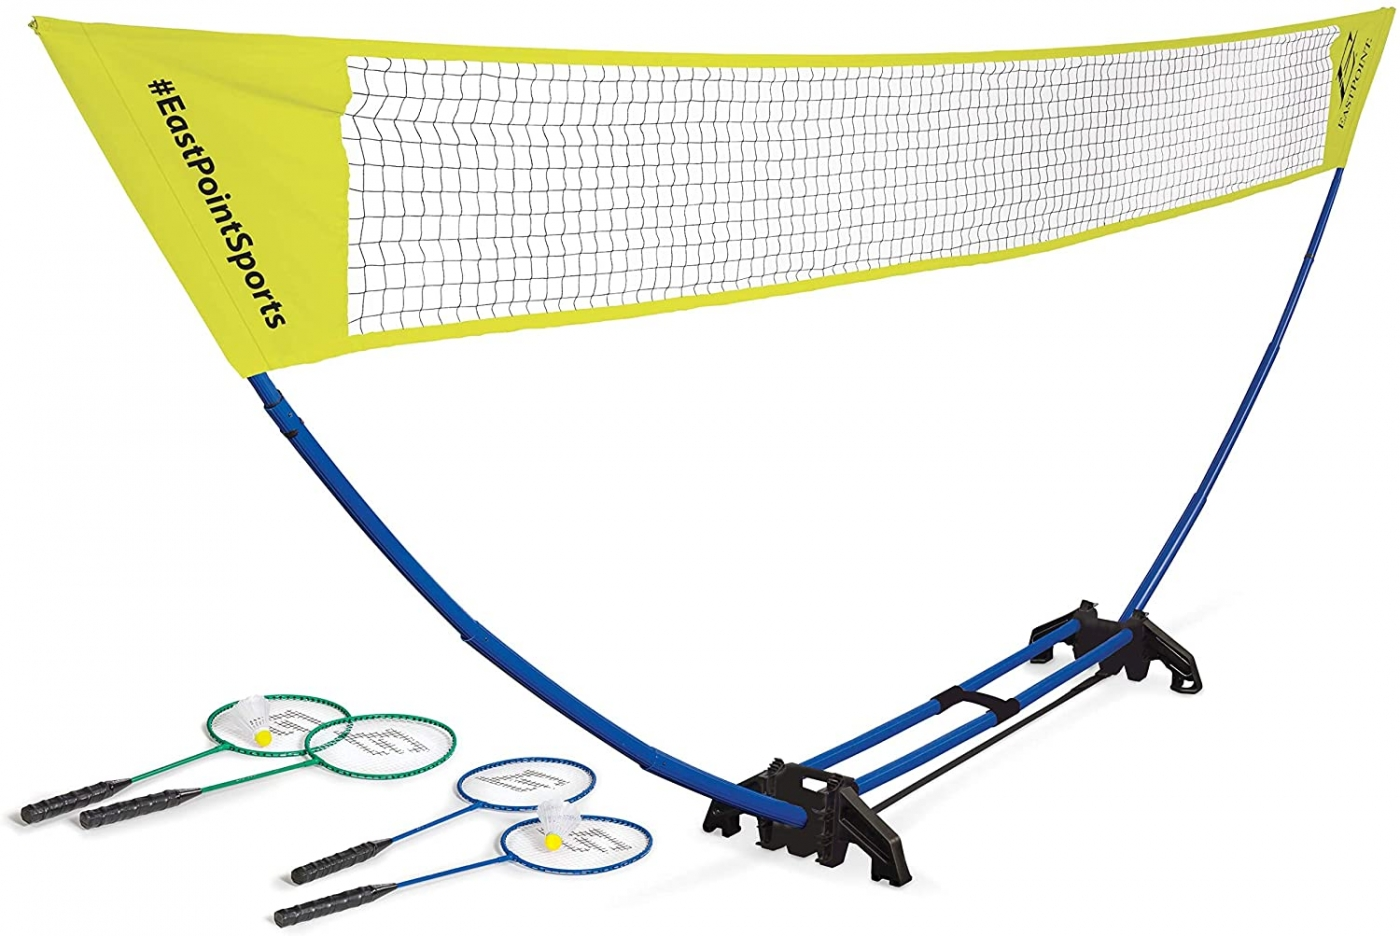 EastPoint Sports Easy Setup Regulation Badminton Set